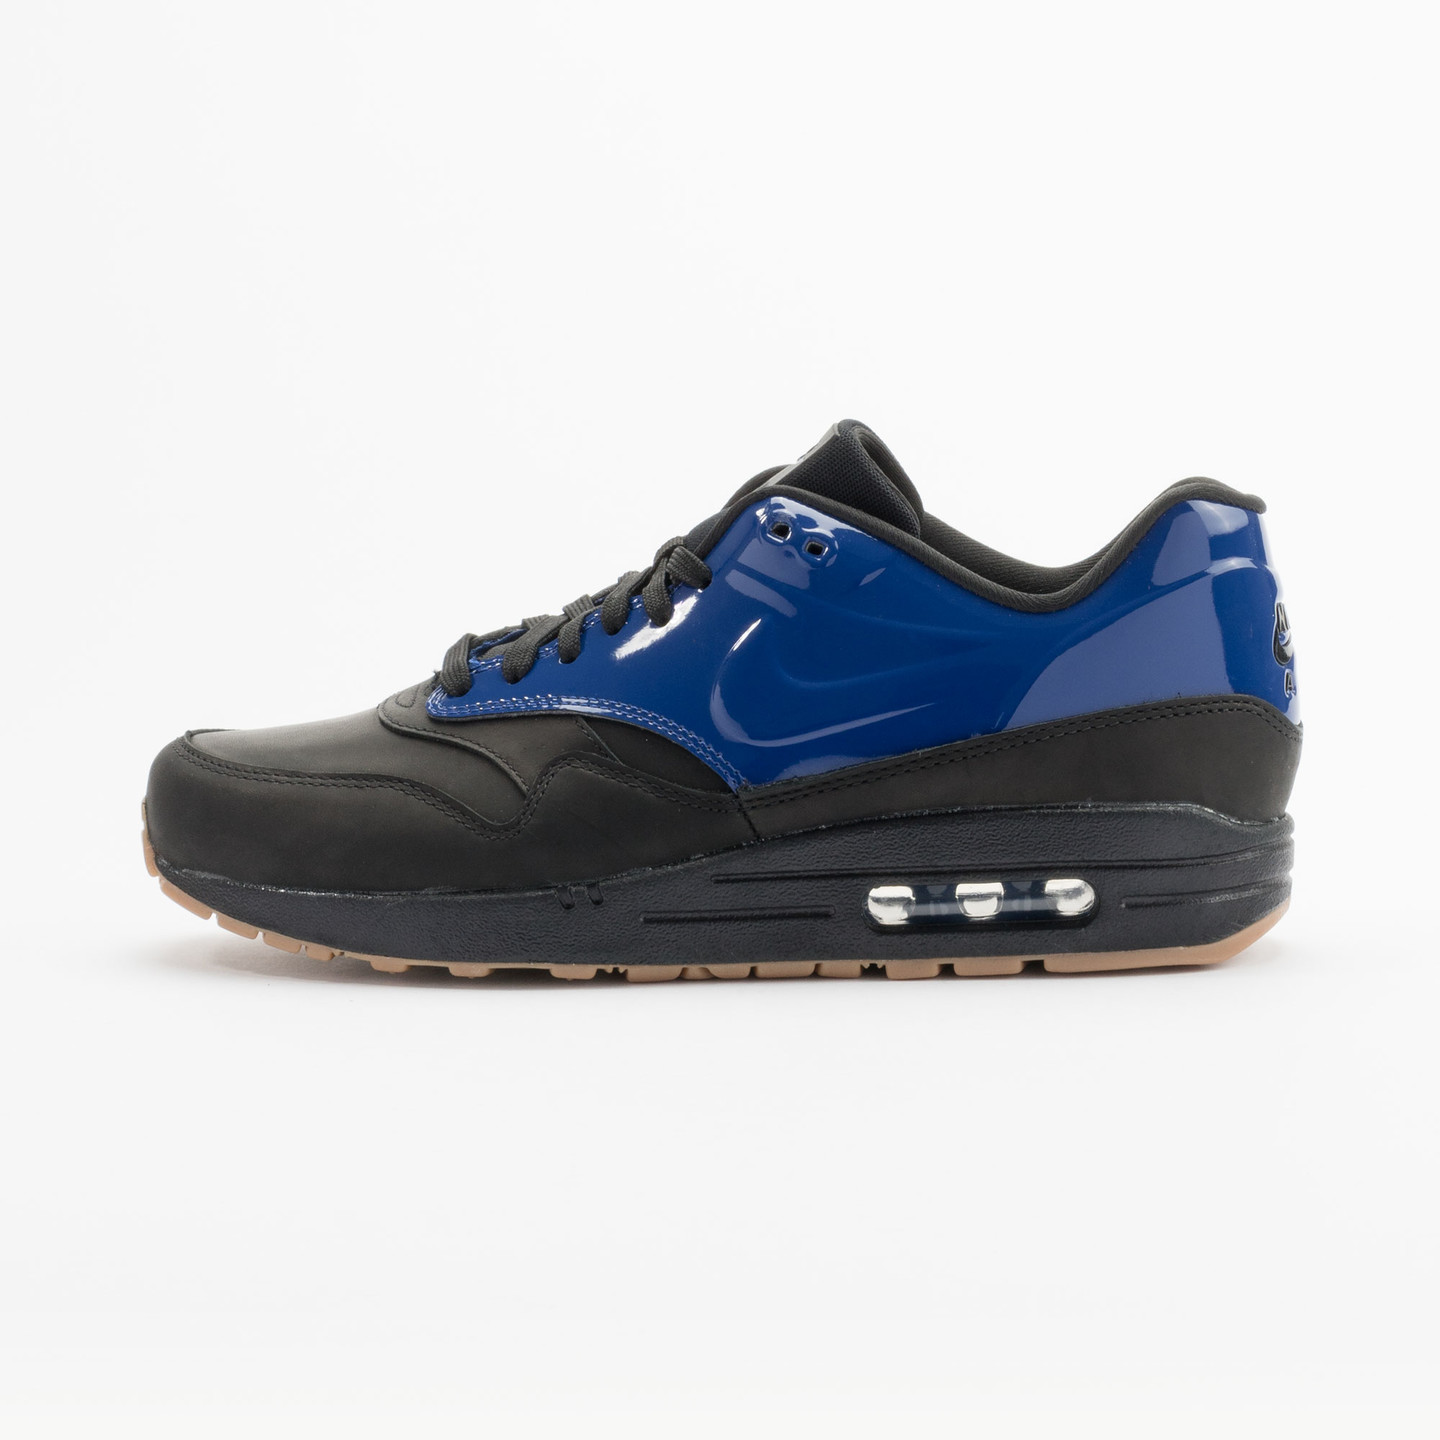 Nike Air Max 1 Vac Tech QS Deep Royal Blue / Black 831113-400-41